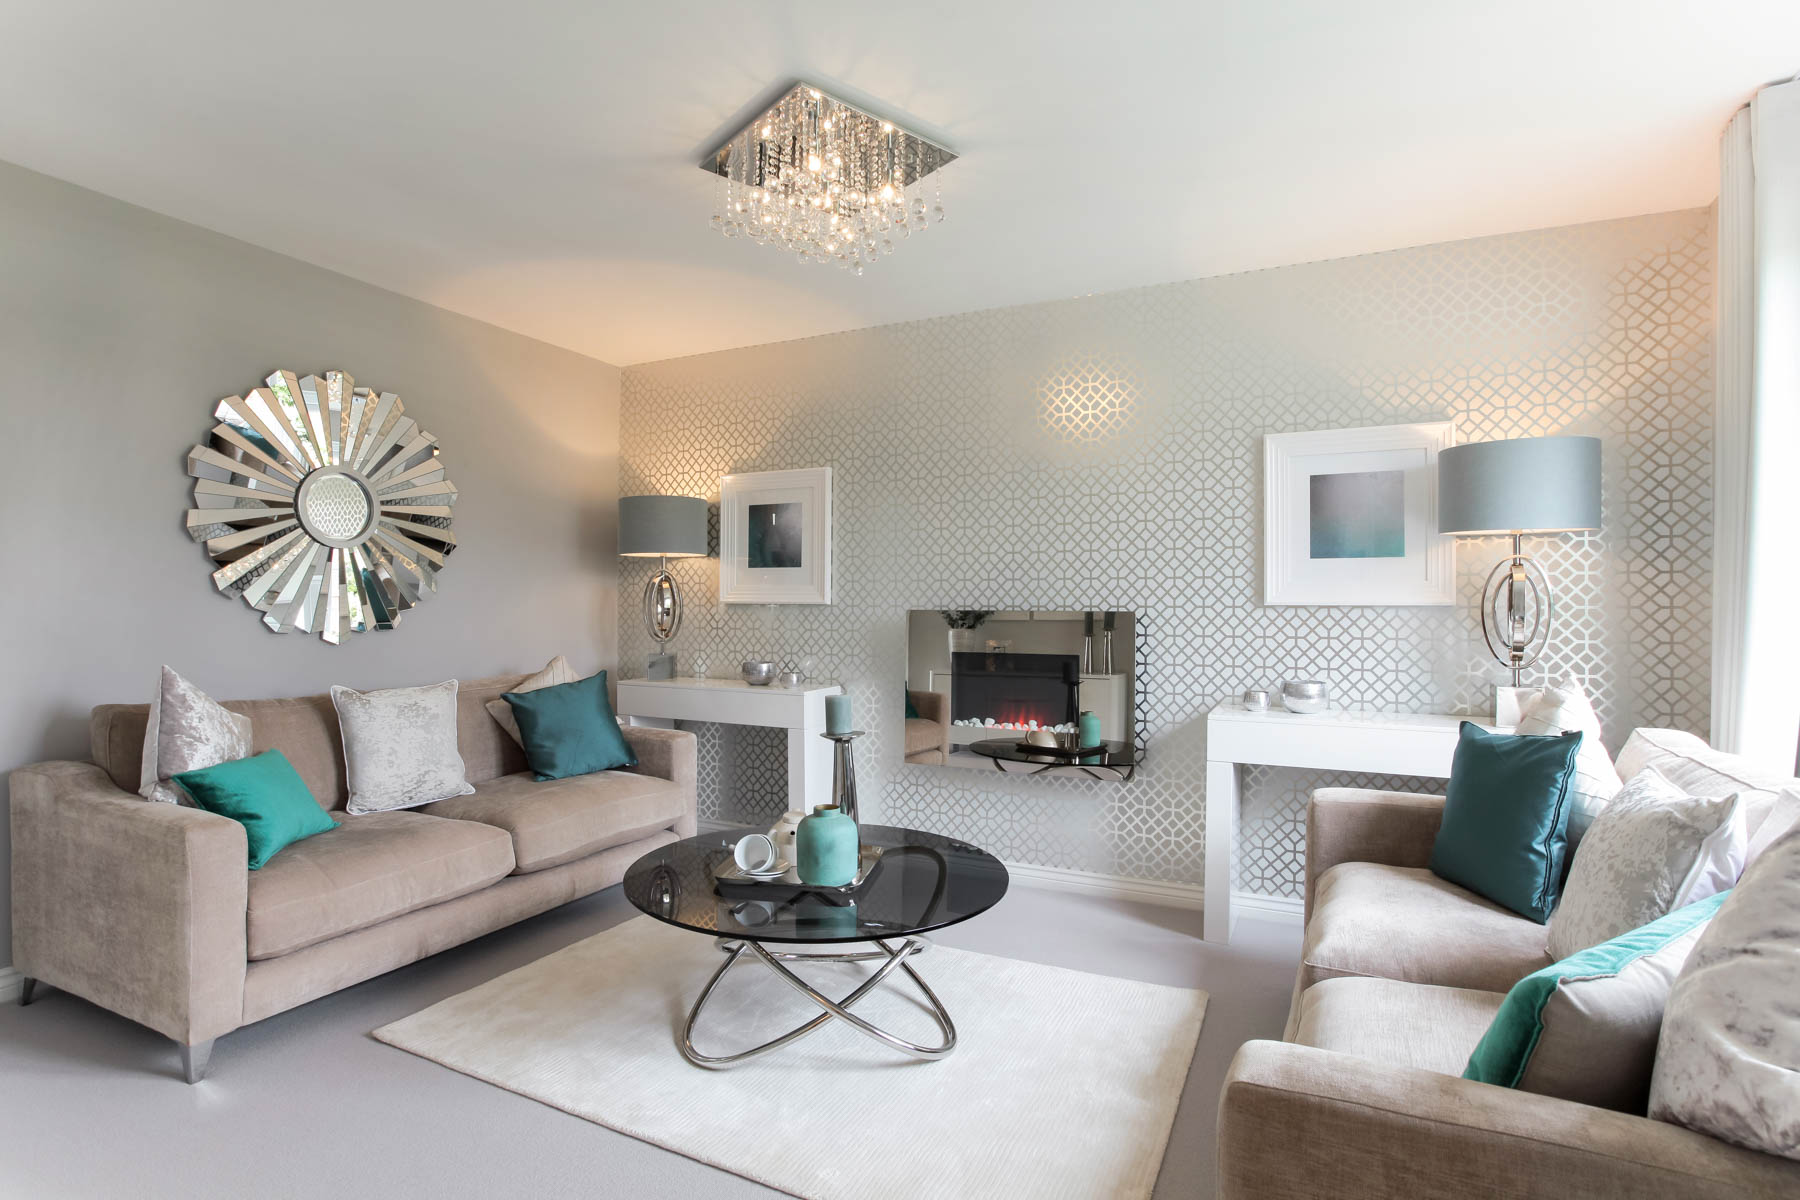 Living Room Shows Property Millfields At Lingfield Point  Taylor Wimpey